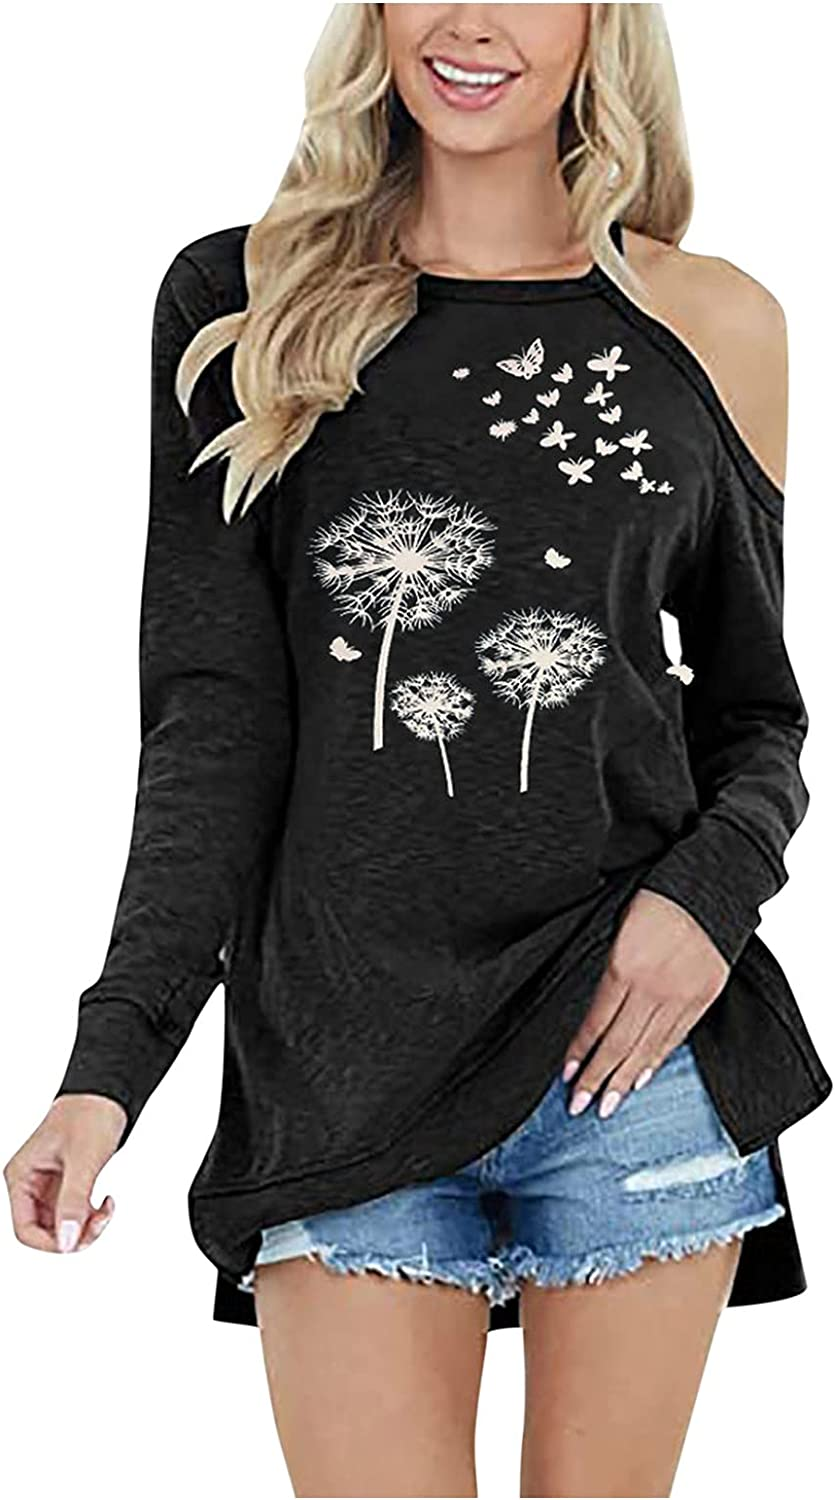 WXYGY Spring new work one after another Womens Casual Off The Skew Tops Shoulder Ranking TOP1 Neck Print